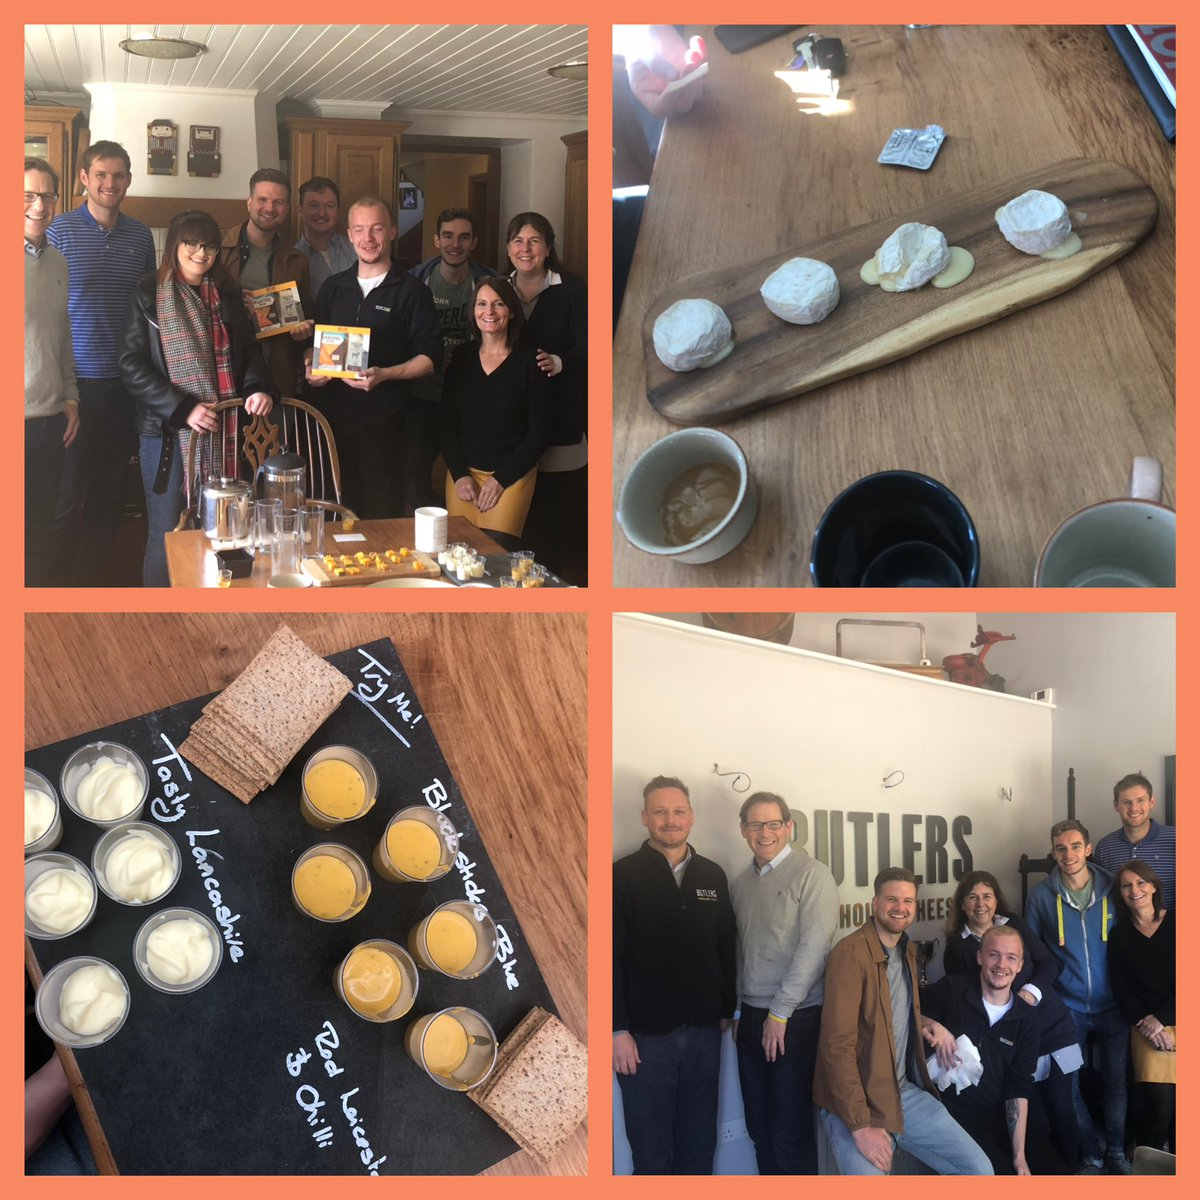 RT @TheHubAt16: Great morning @ButlersCheese #nvqs #opportunities #hospitality #careers https://t.co/wnM7tG5yYe